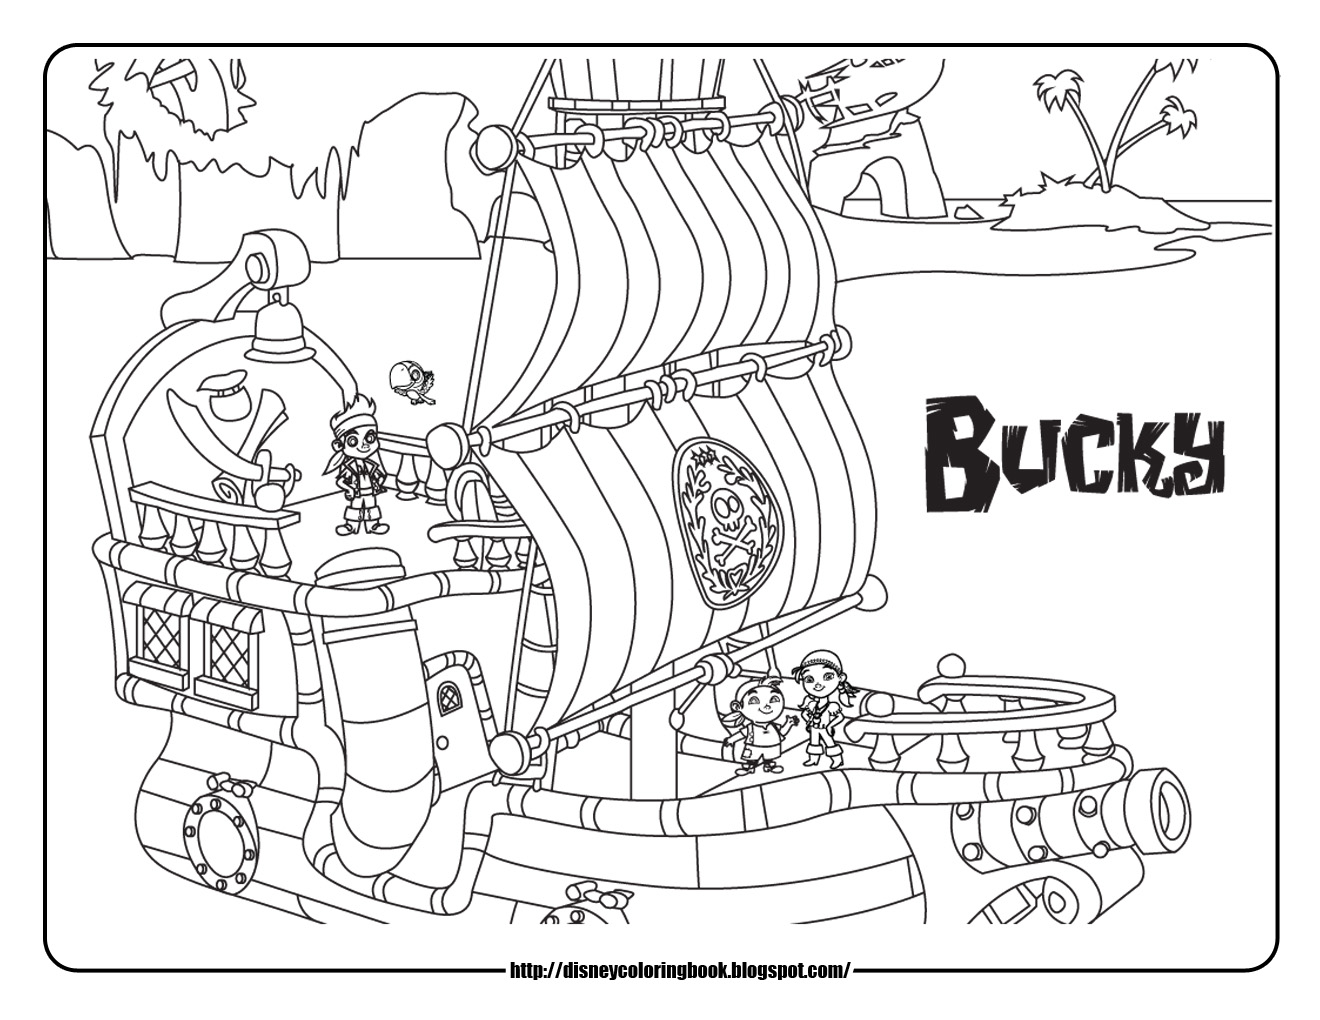 disney pirates coloring pages - photo#28